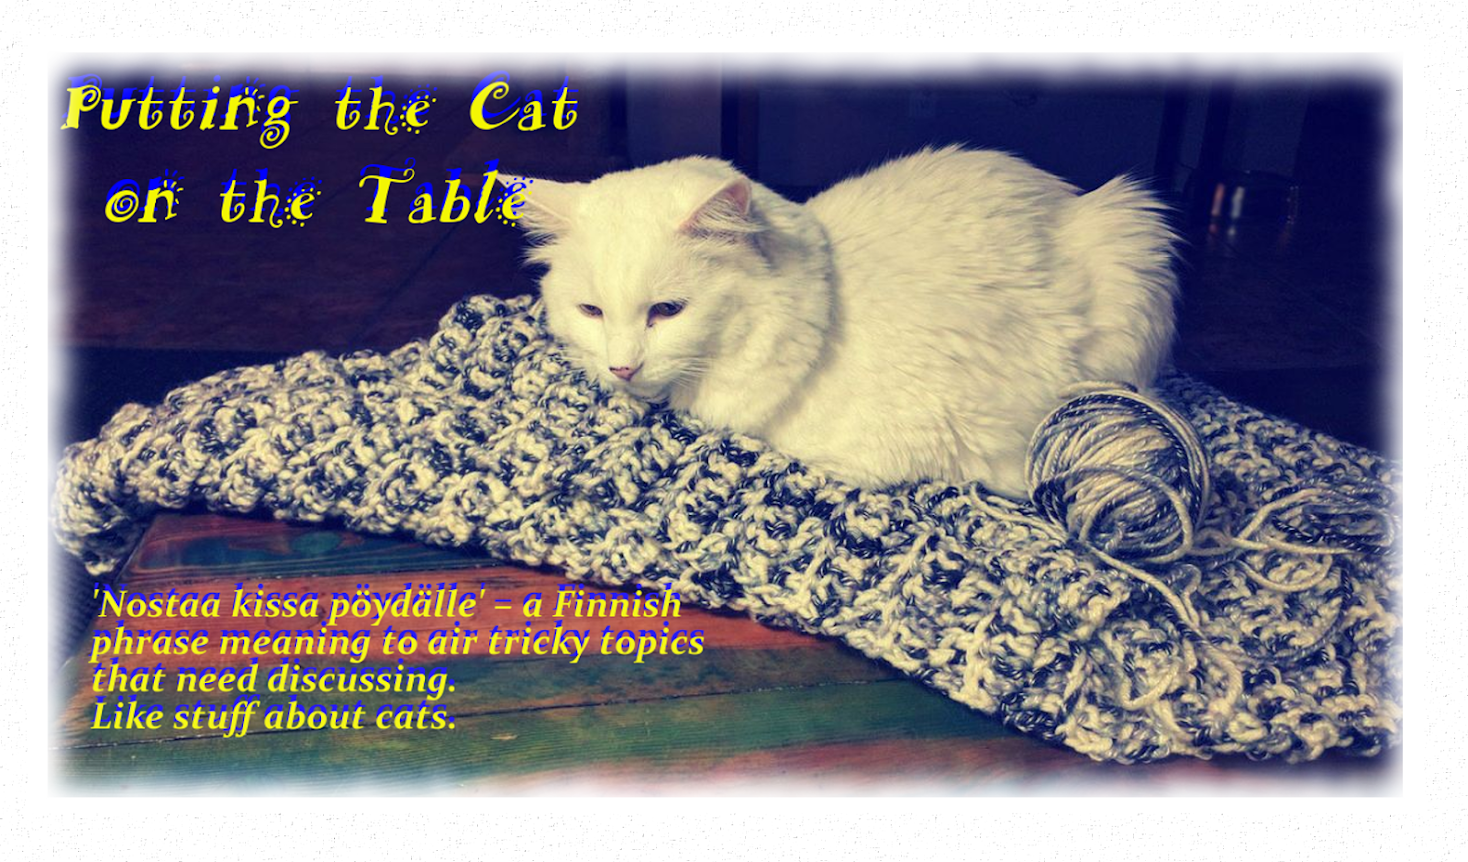 Putting the Cat on the Table